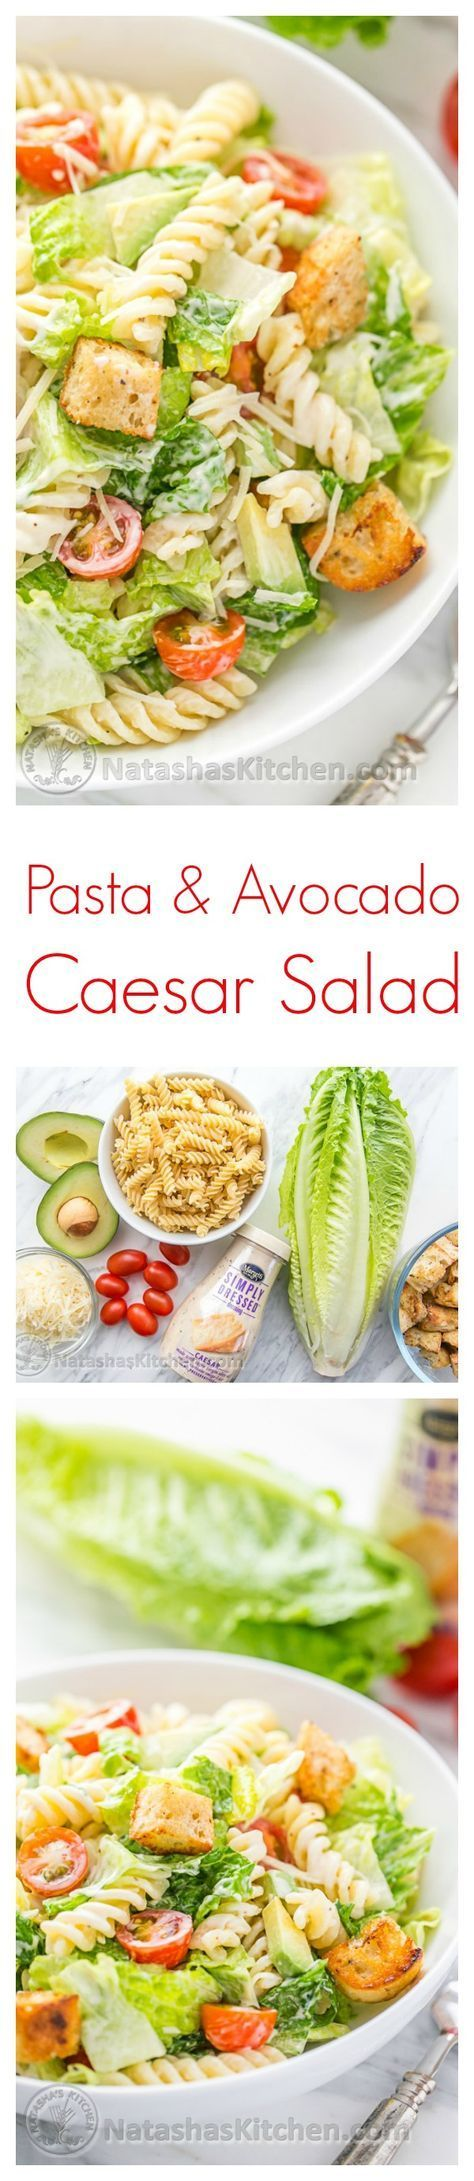 You have to try this Pasta Avocado Caesar Salad. Easy and family friendly weeknight meal! /natashaskitchen/ #sponsored by /marzettikitchen/